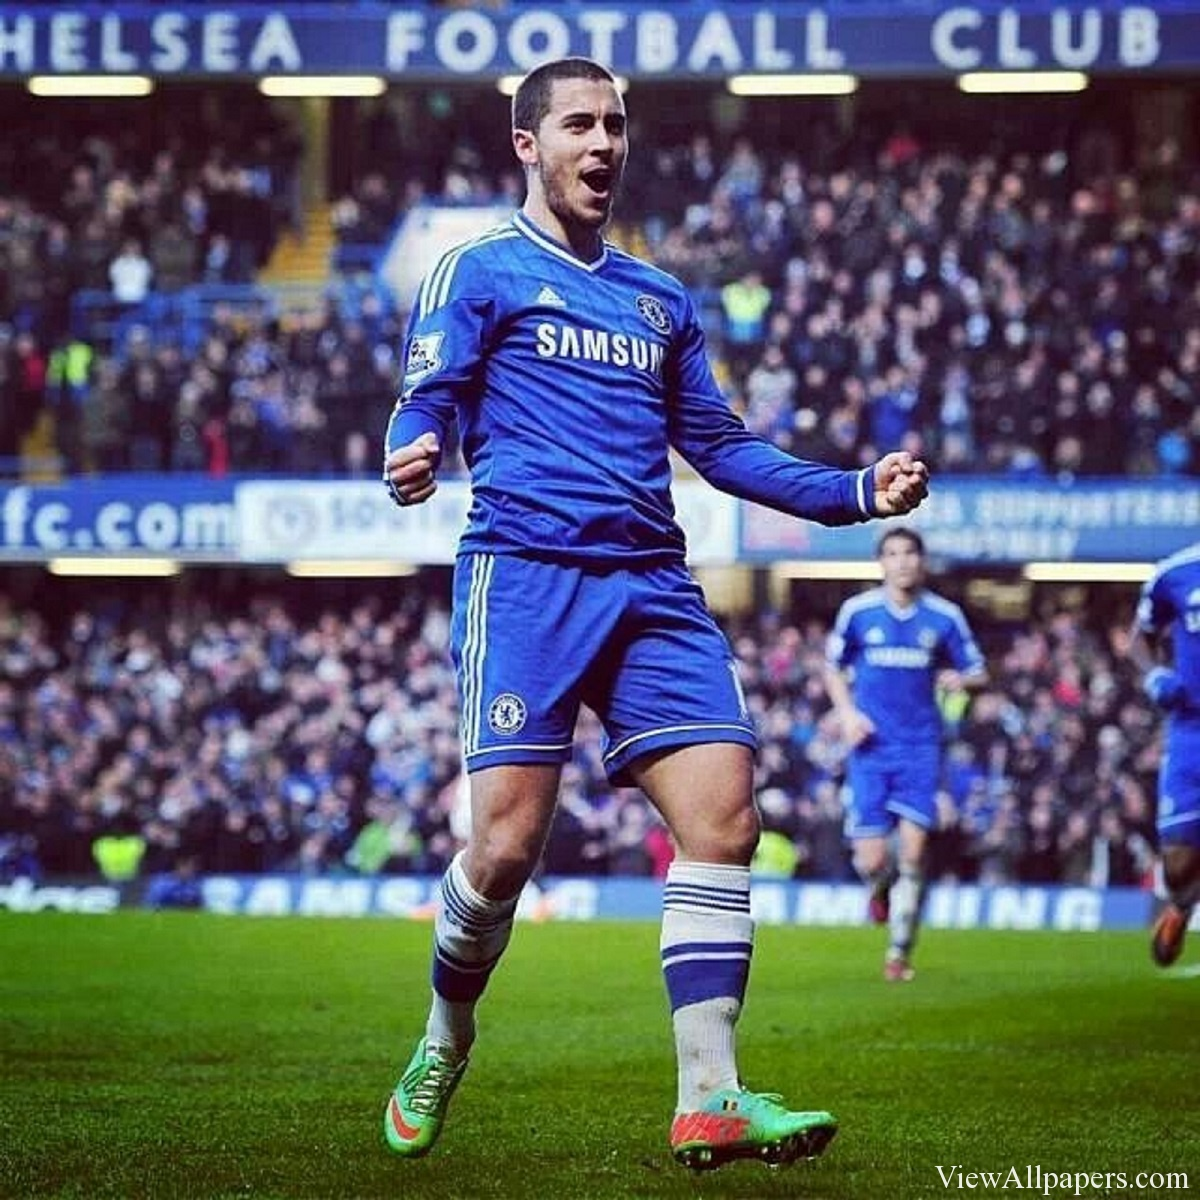 Eden hazard wallpaper hd wallpapersafari eden hazard chelsea for pc computers desktop background smartphones voltagebd Image collections